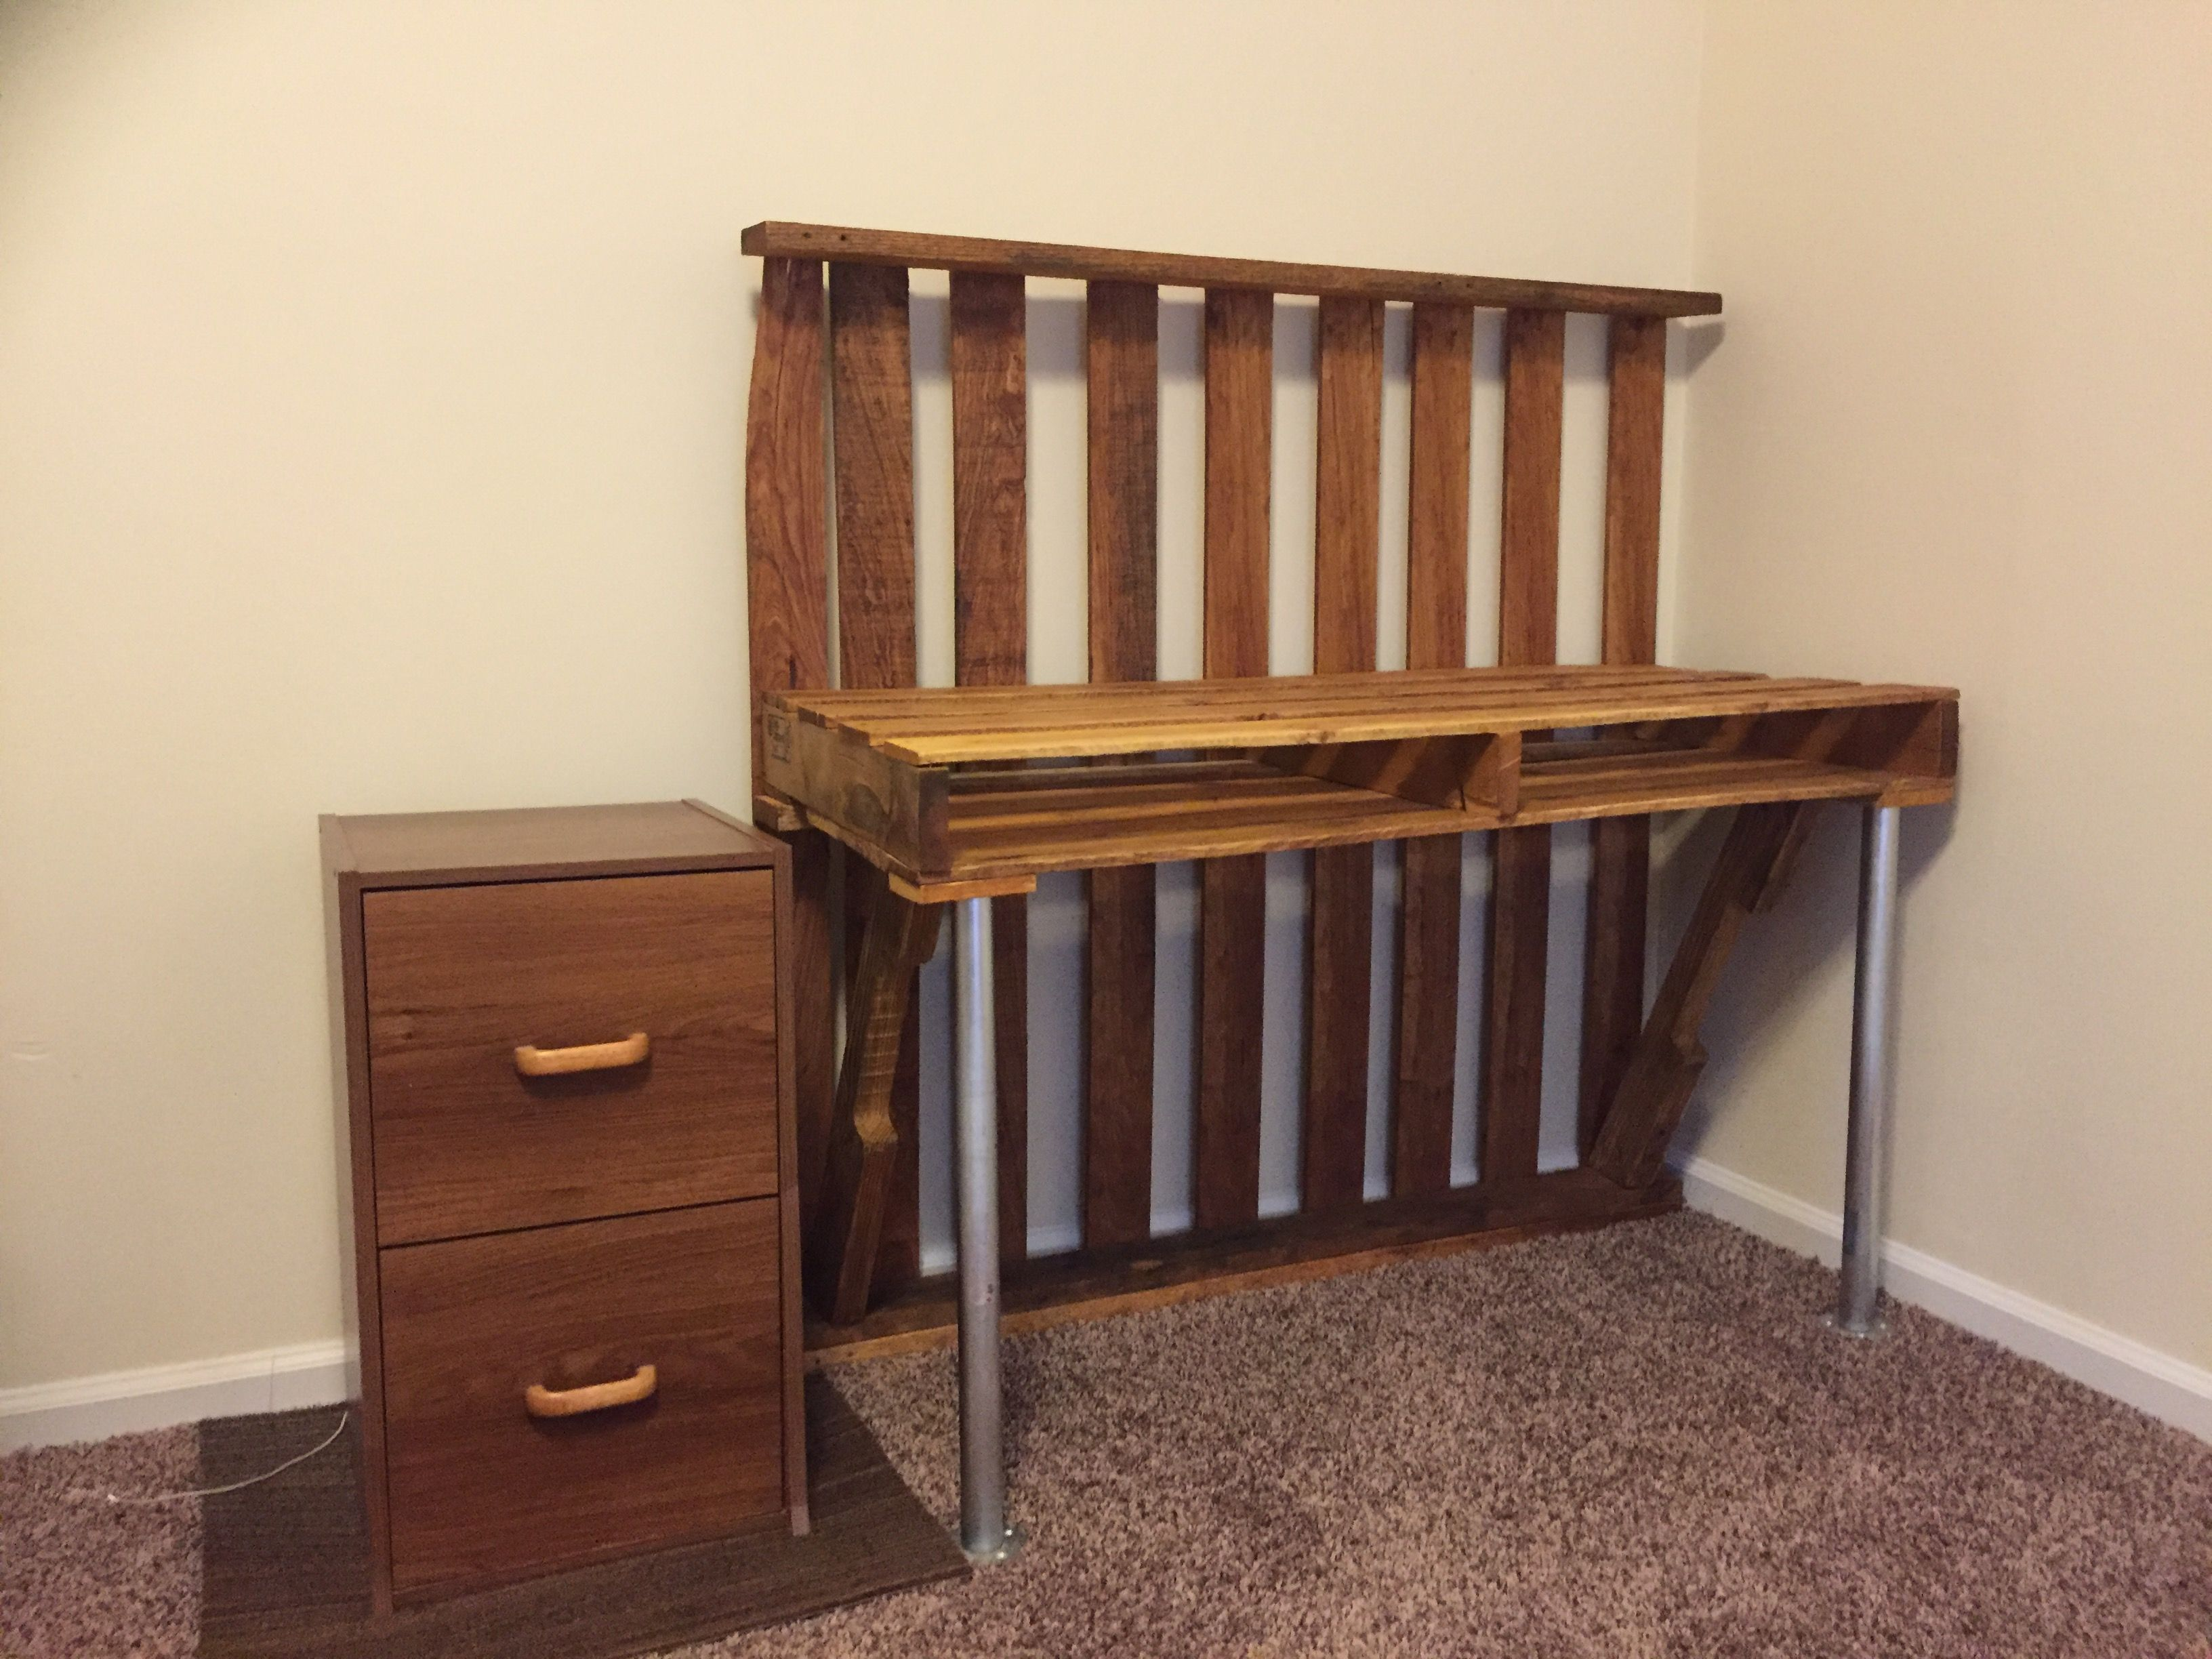 Pallet Wood Computer Desk With Conduit Pipe Legs Used A